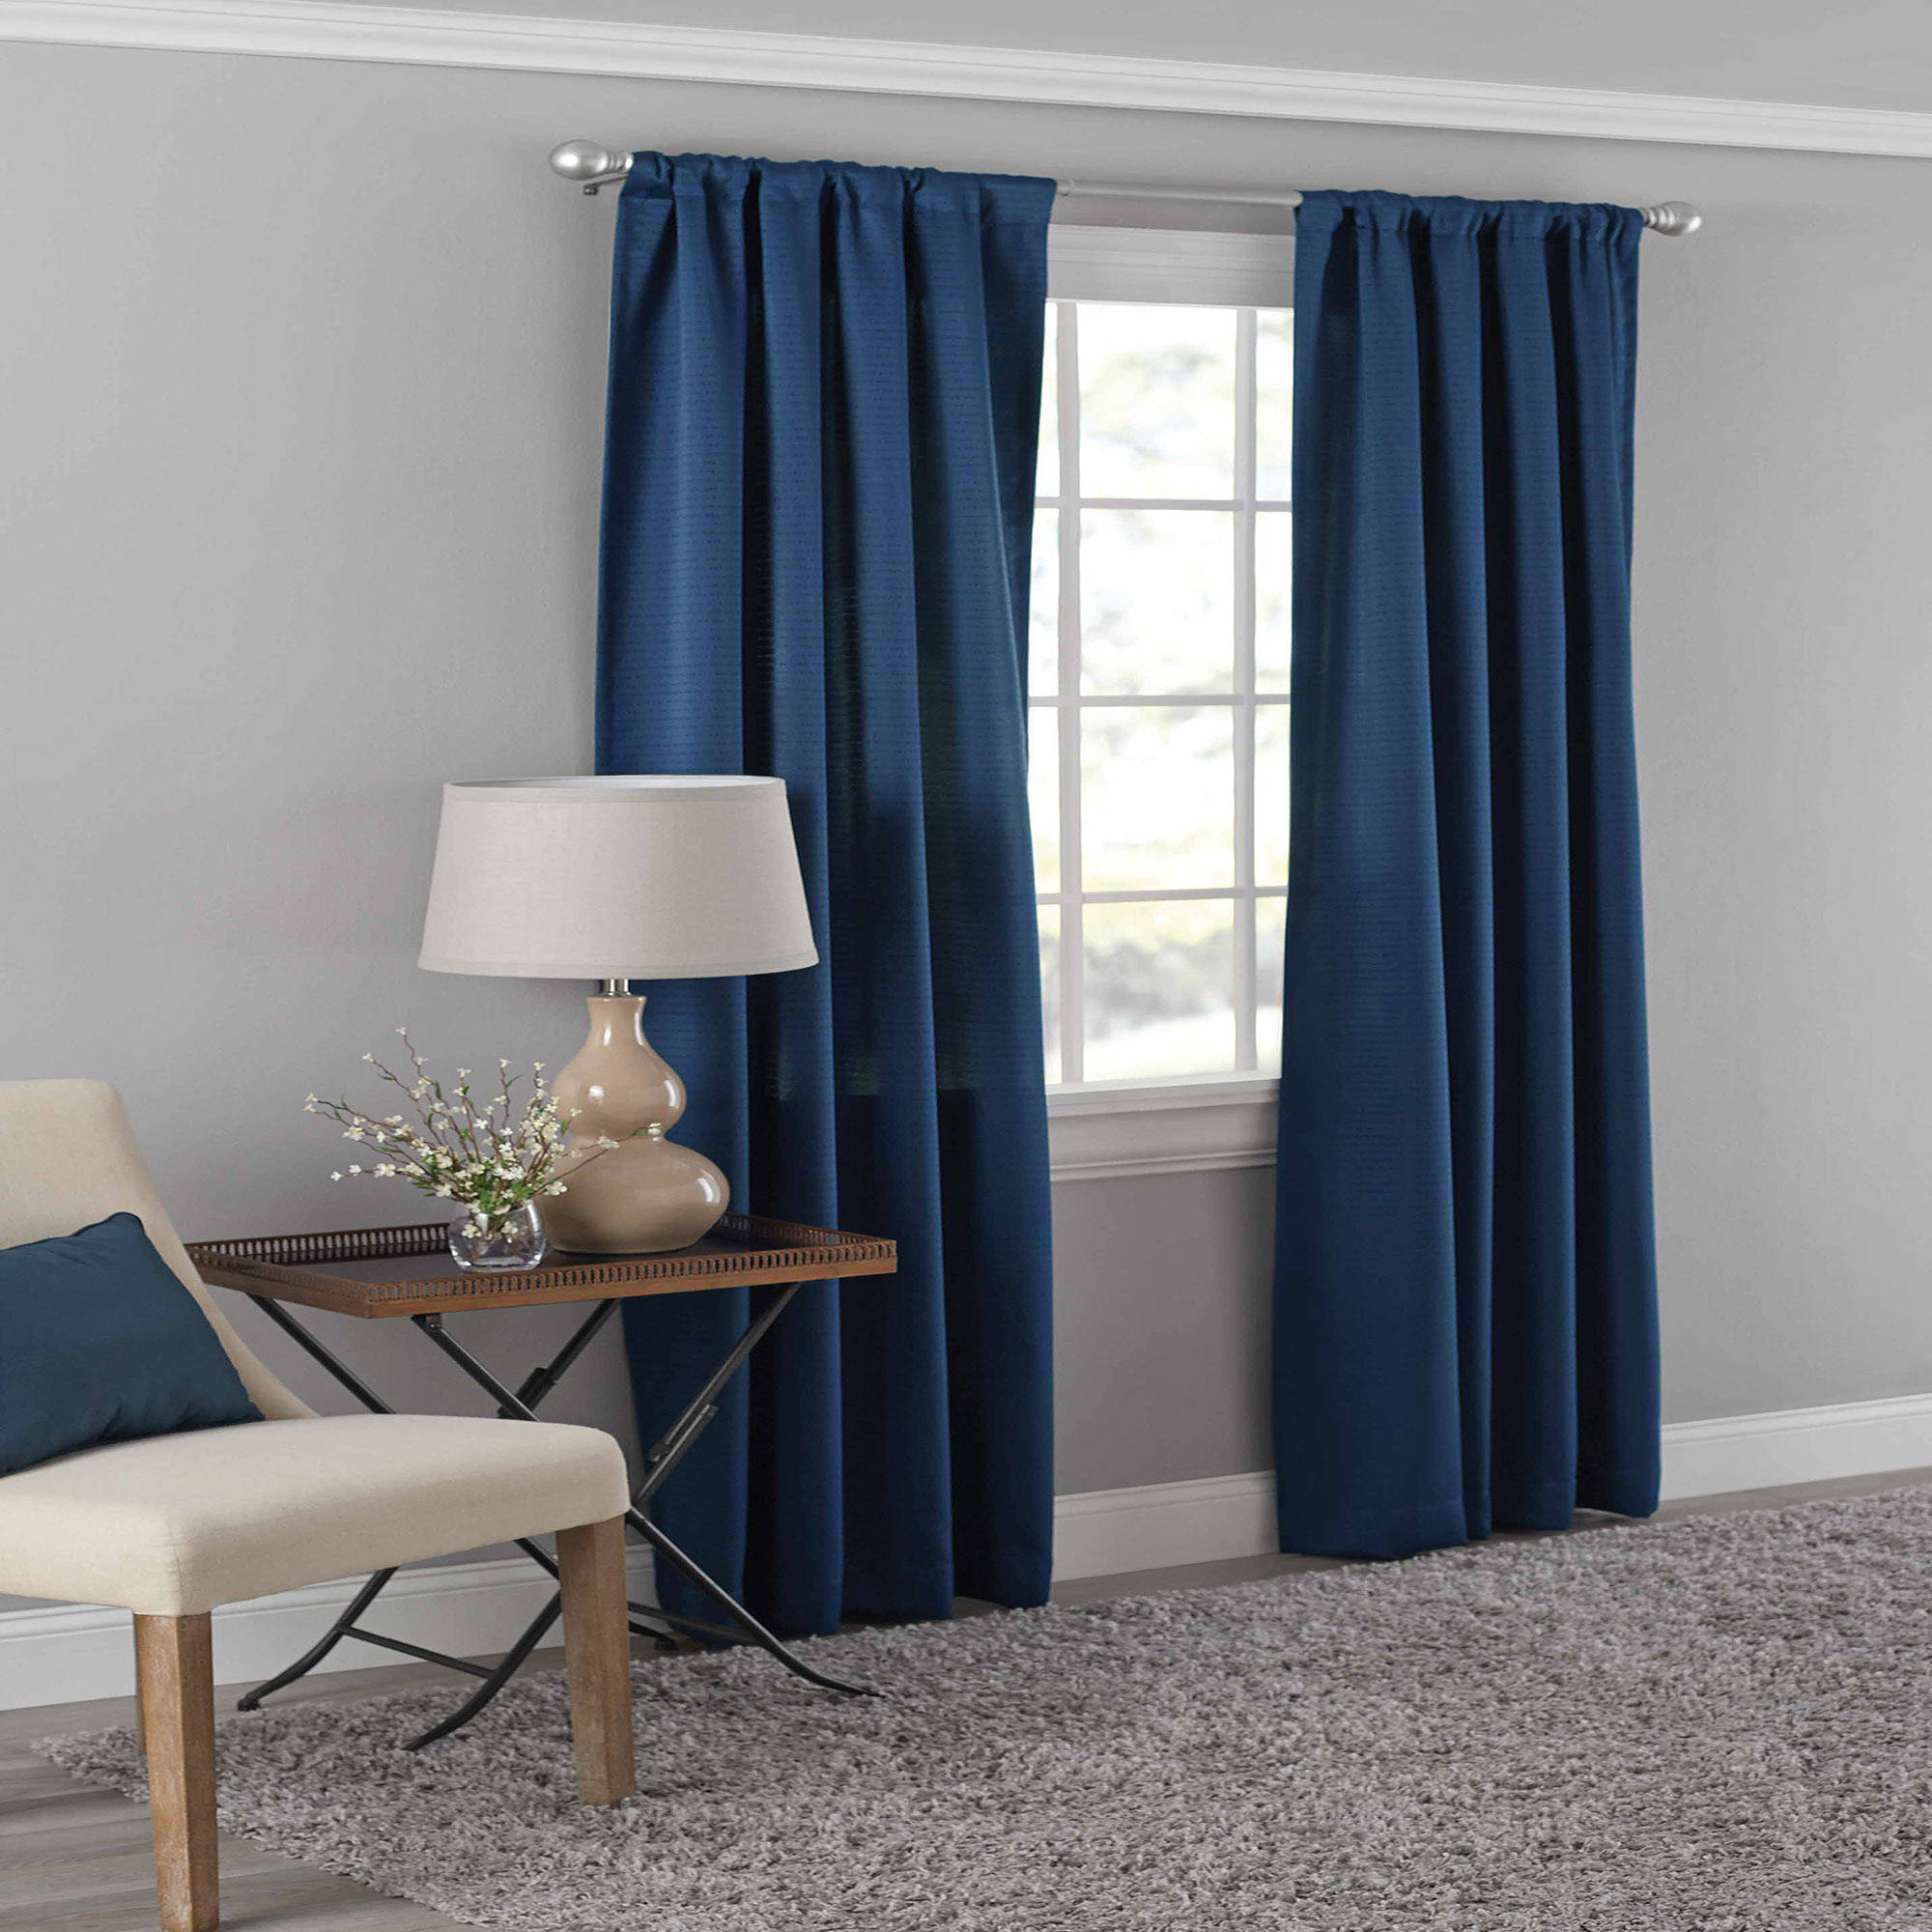 Mainstays Dotted Room Darkening Curtain Panel in Multiple Sizes and Colors by Ellery Homestyles